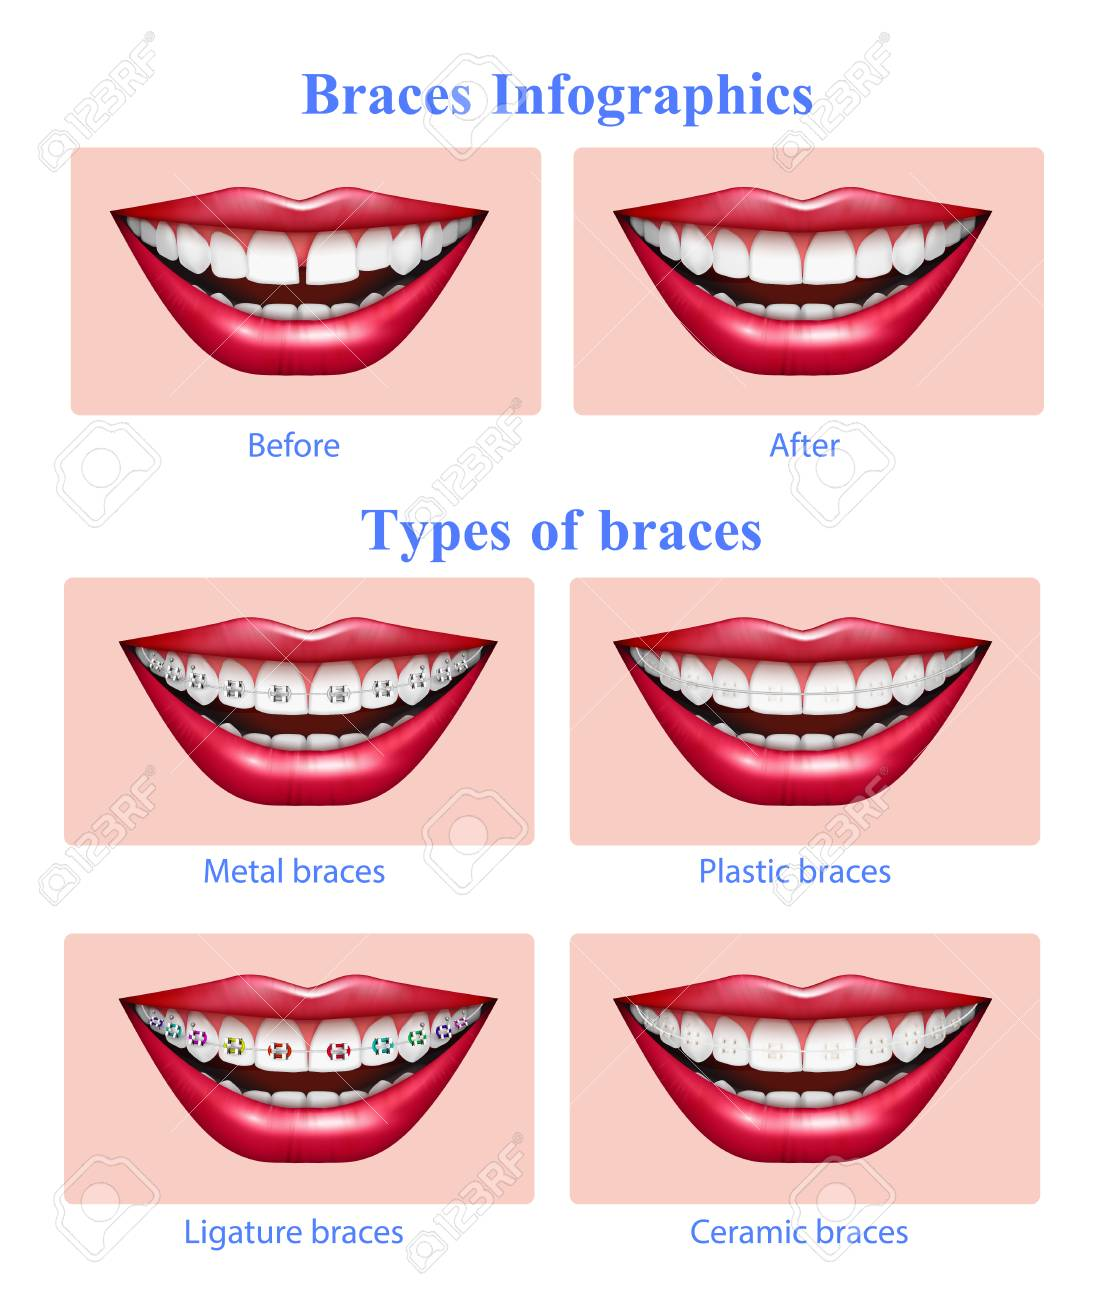 Opened mouth with red glossy lips showing metal plastic ceramic teeth braces types realistic infographic vector illustration - 113845028